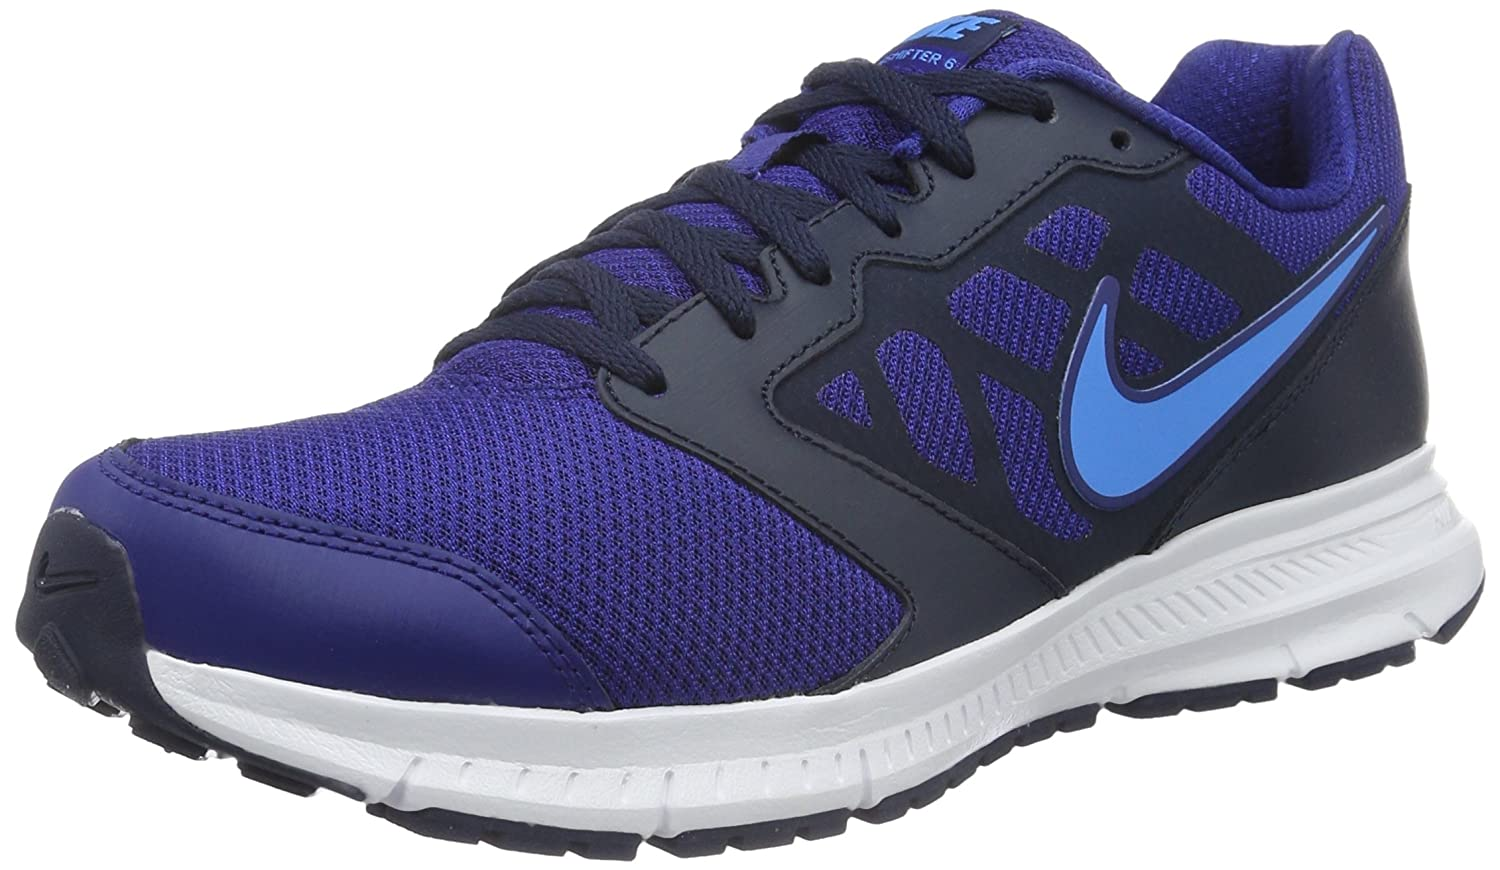 Nike Downshifter 6 Running Shoe B019DN0S92 12 D(M) US|Deep Royal Blue/Blue Glow/Obsidan/White